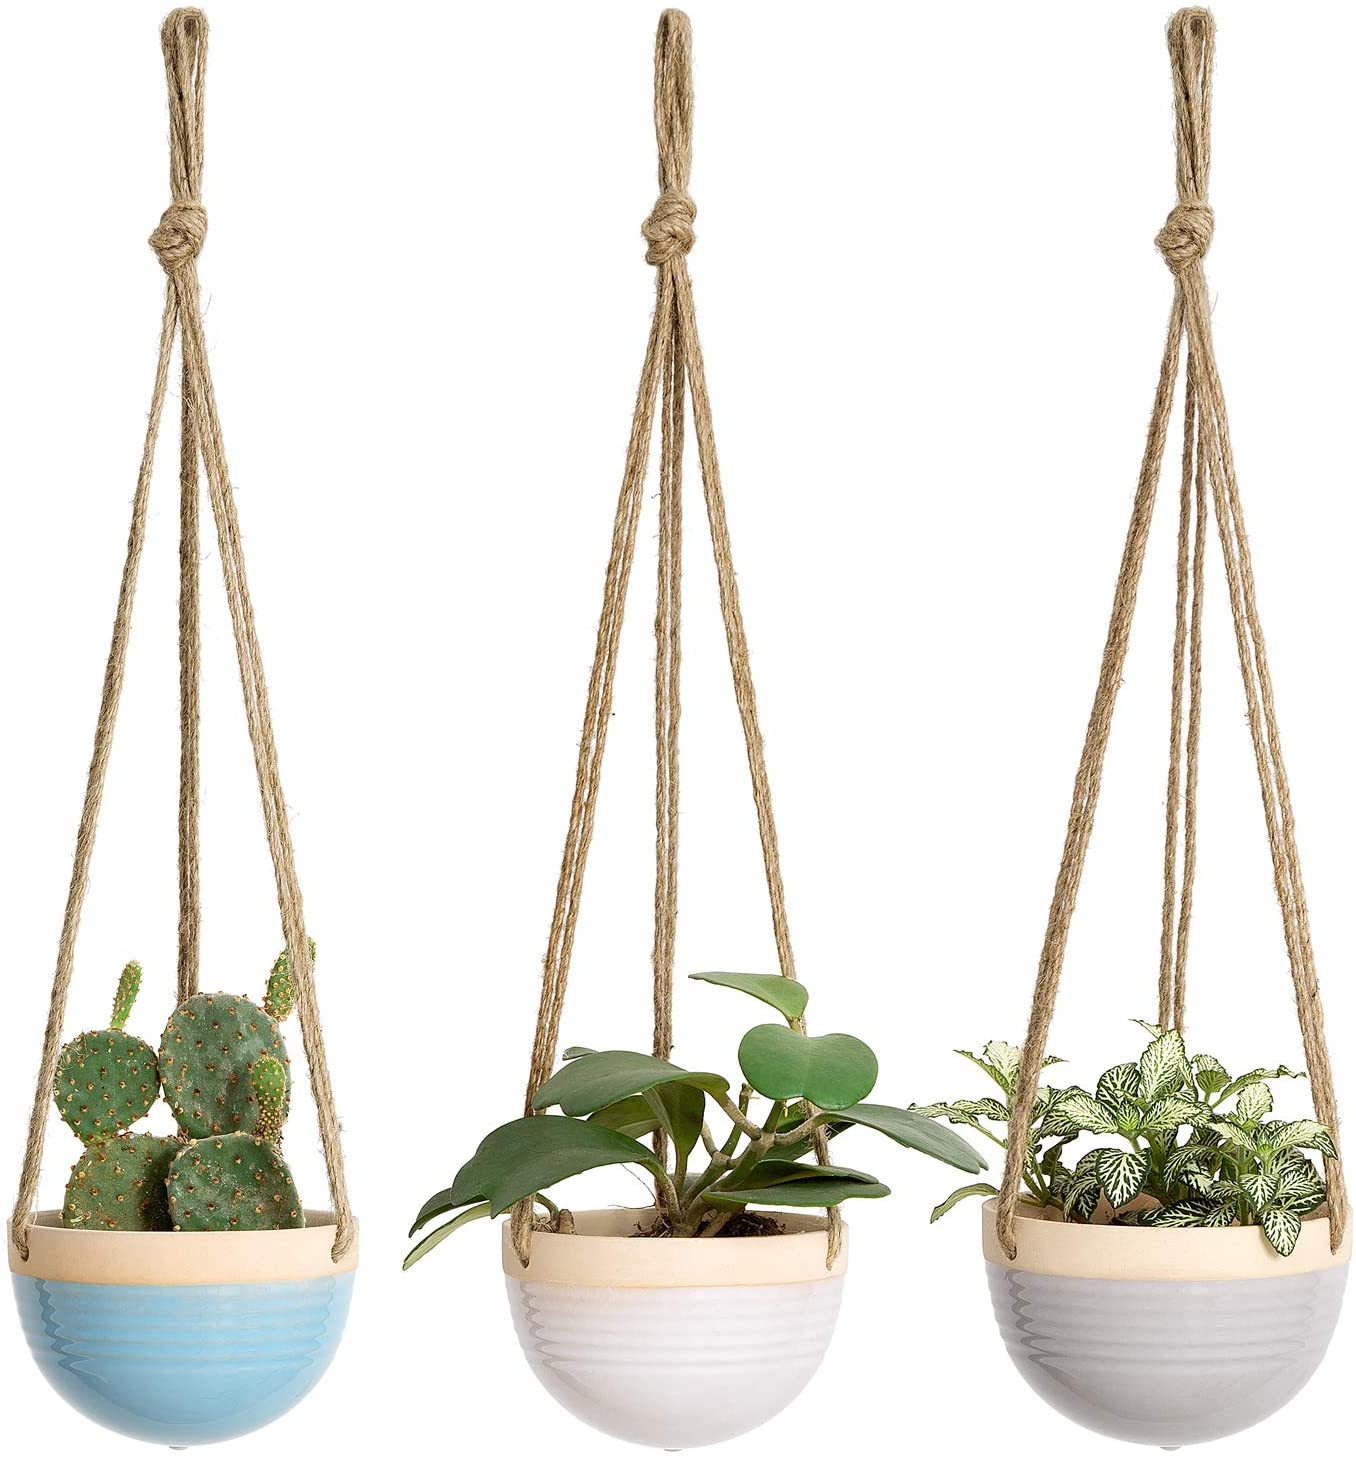 Mkono 4 5 Inch Ceramic Hanging Planter Set Of 3 Colorful Flower Plant Pots Round Plant Holder With Jute Rope Hanger For Indoor Succulent Herbs Ivy Ferns Crawling Plants Blue White And